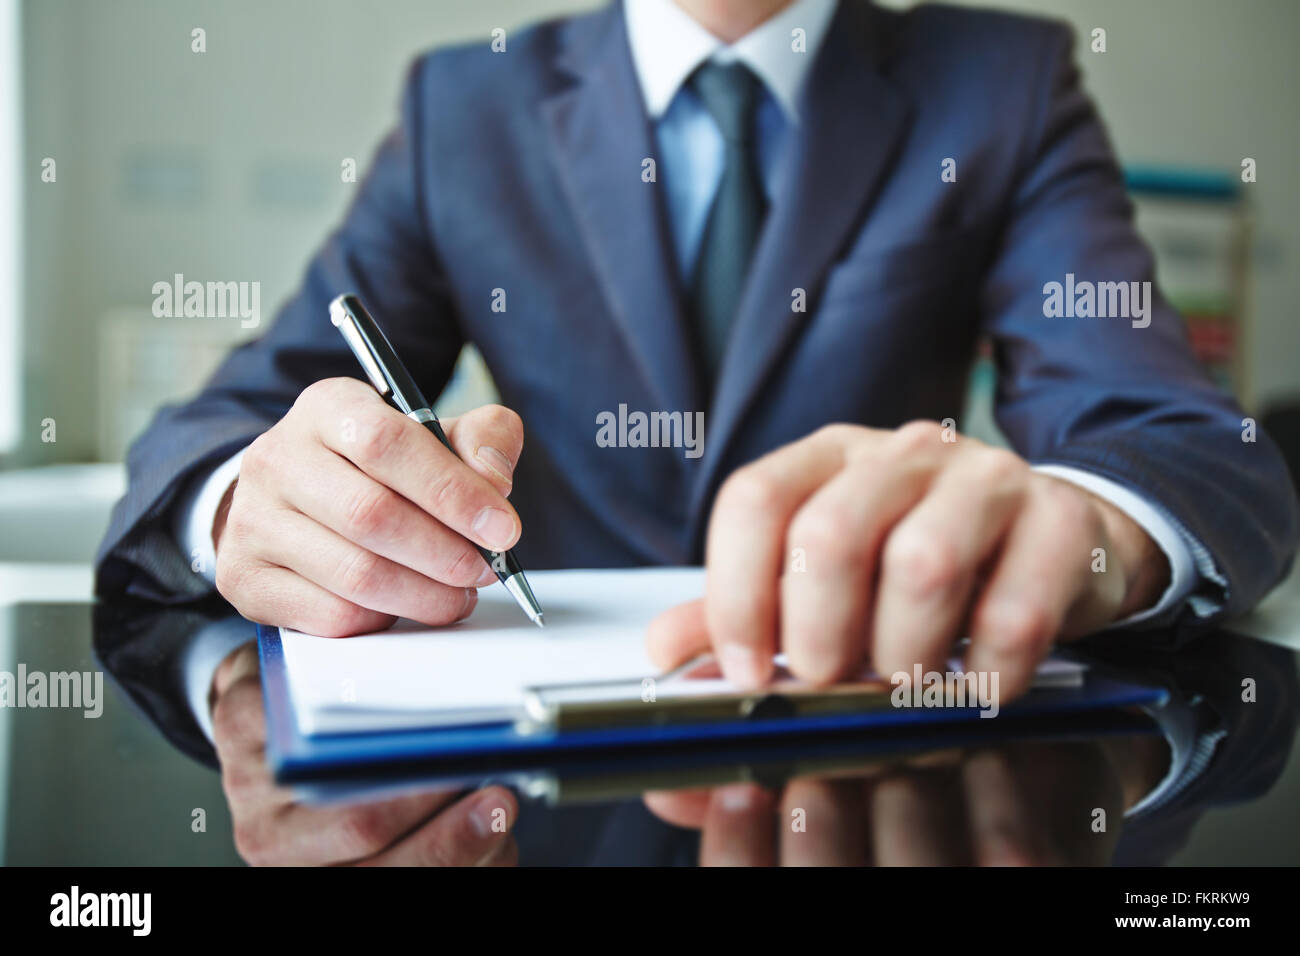 Close-up of male hand signing a document - Stock Image